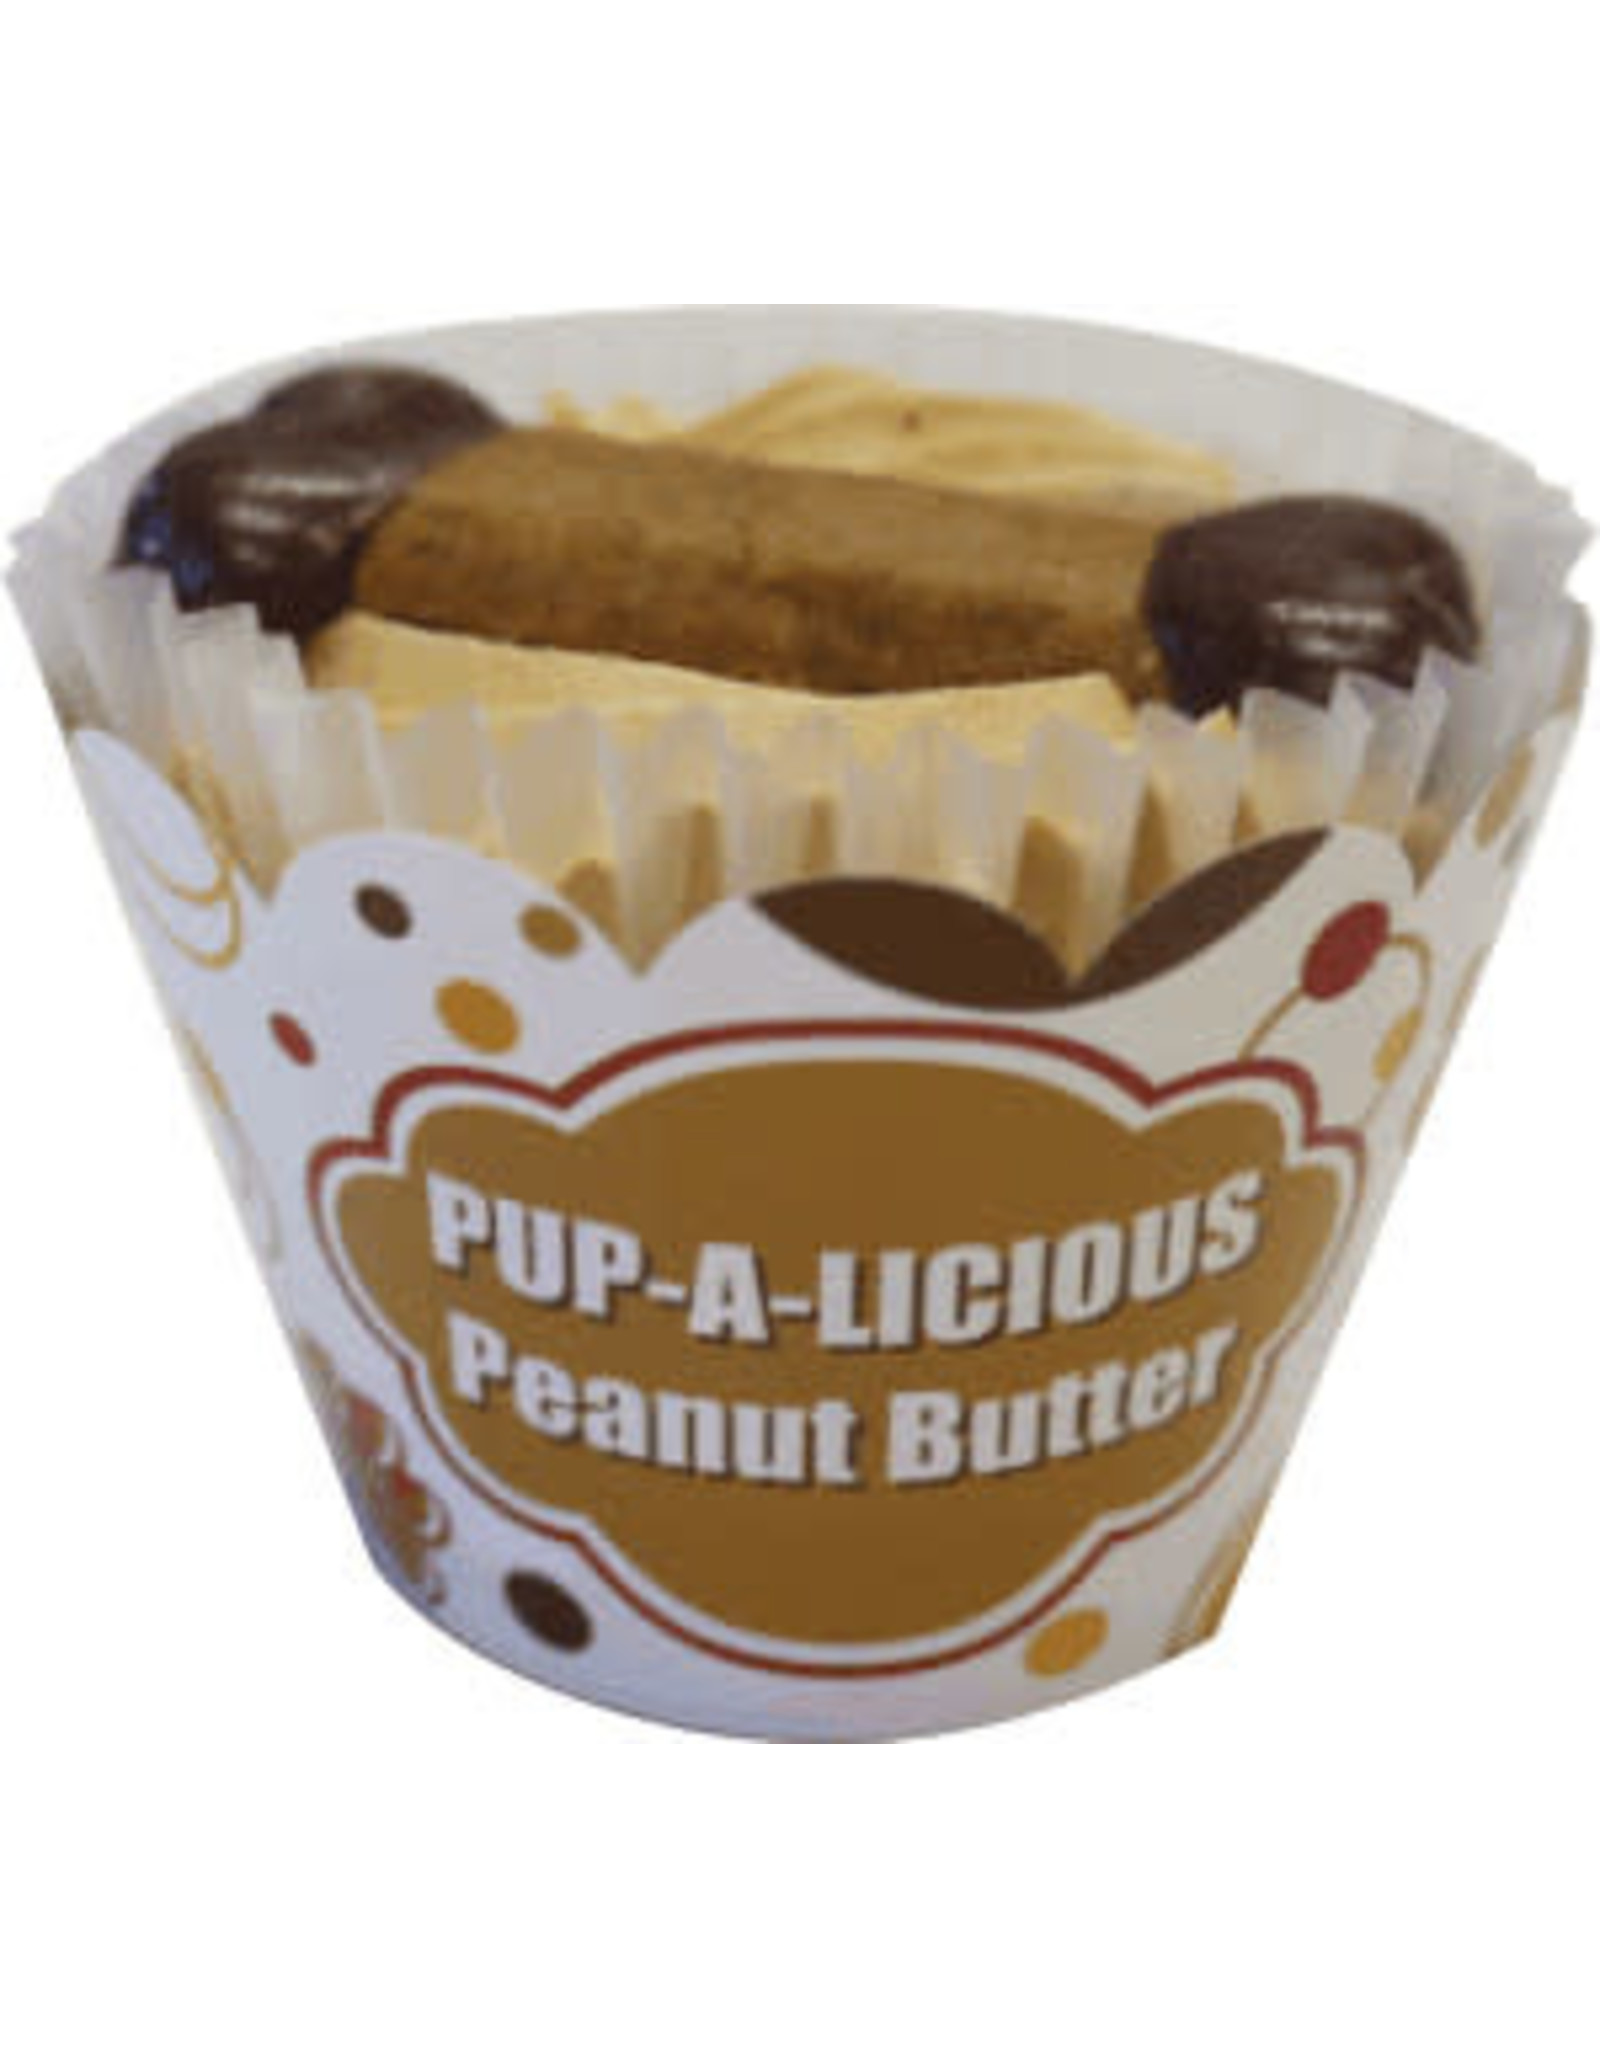 Peanut Butter Cupcake for Dogs